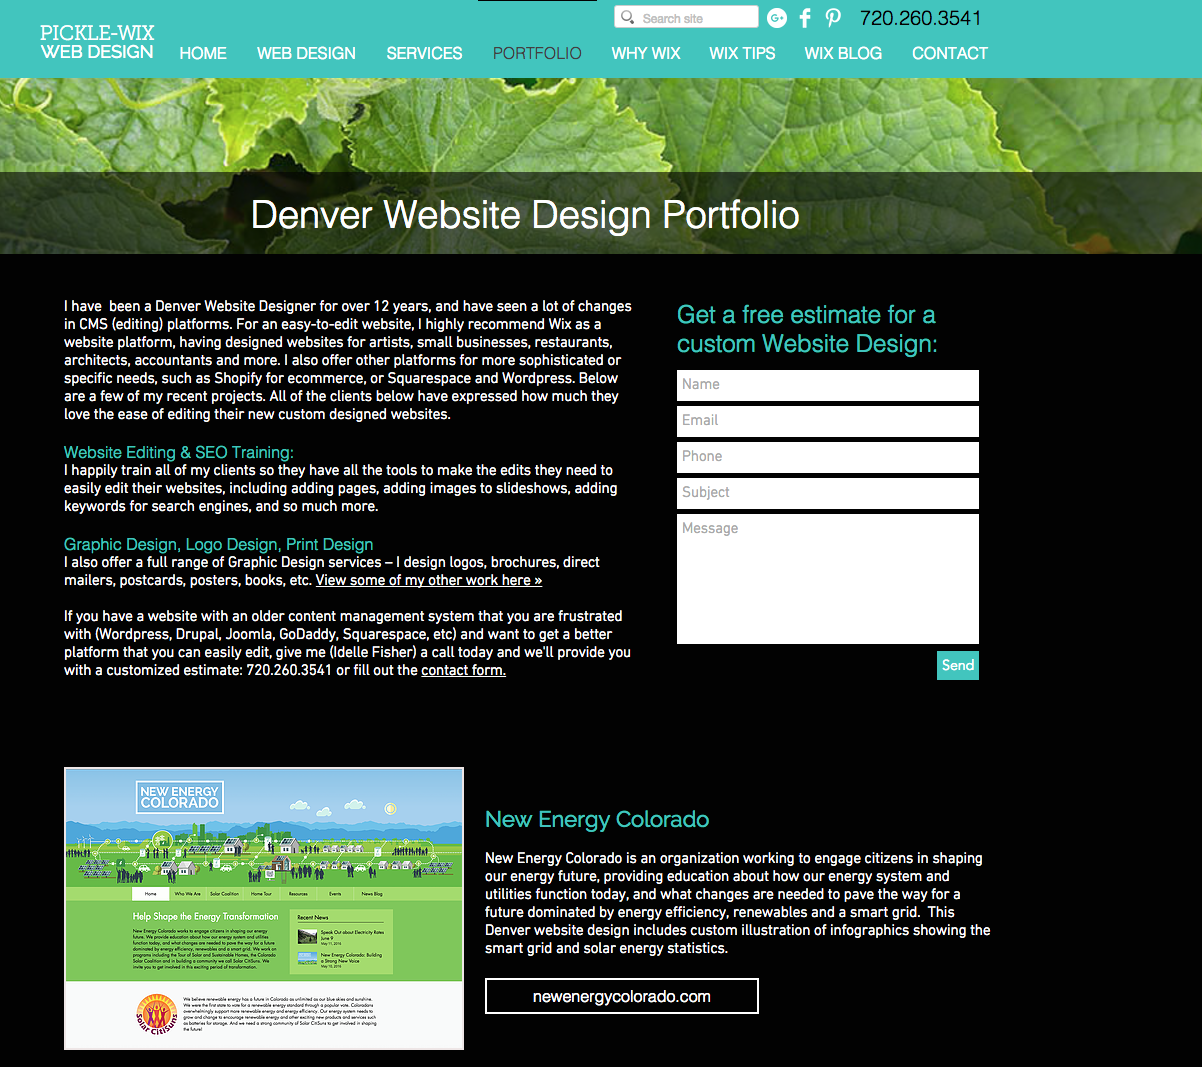 Check Out Our Denver Website Design Portfolio At Http Www Picklewix Com Portfolio Portfolio Web Design Wix Web Design Portfolio Website Design